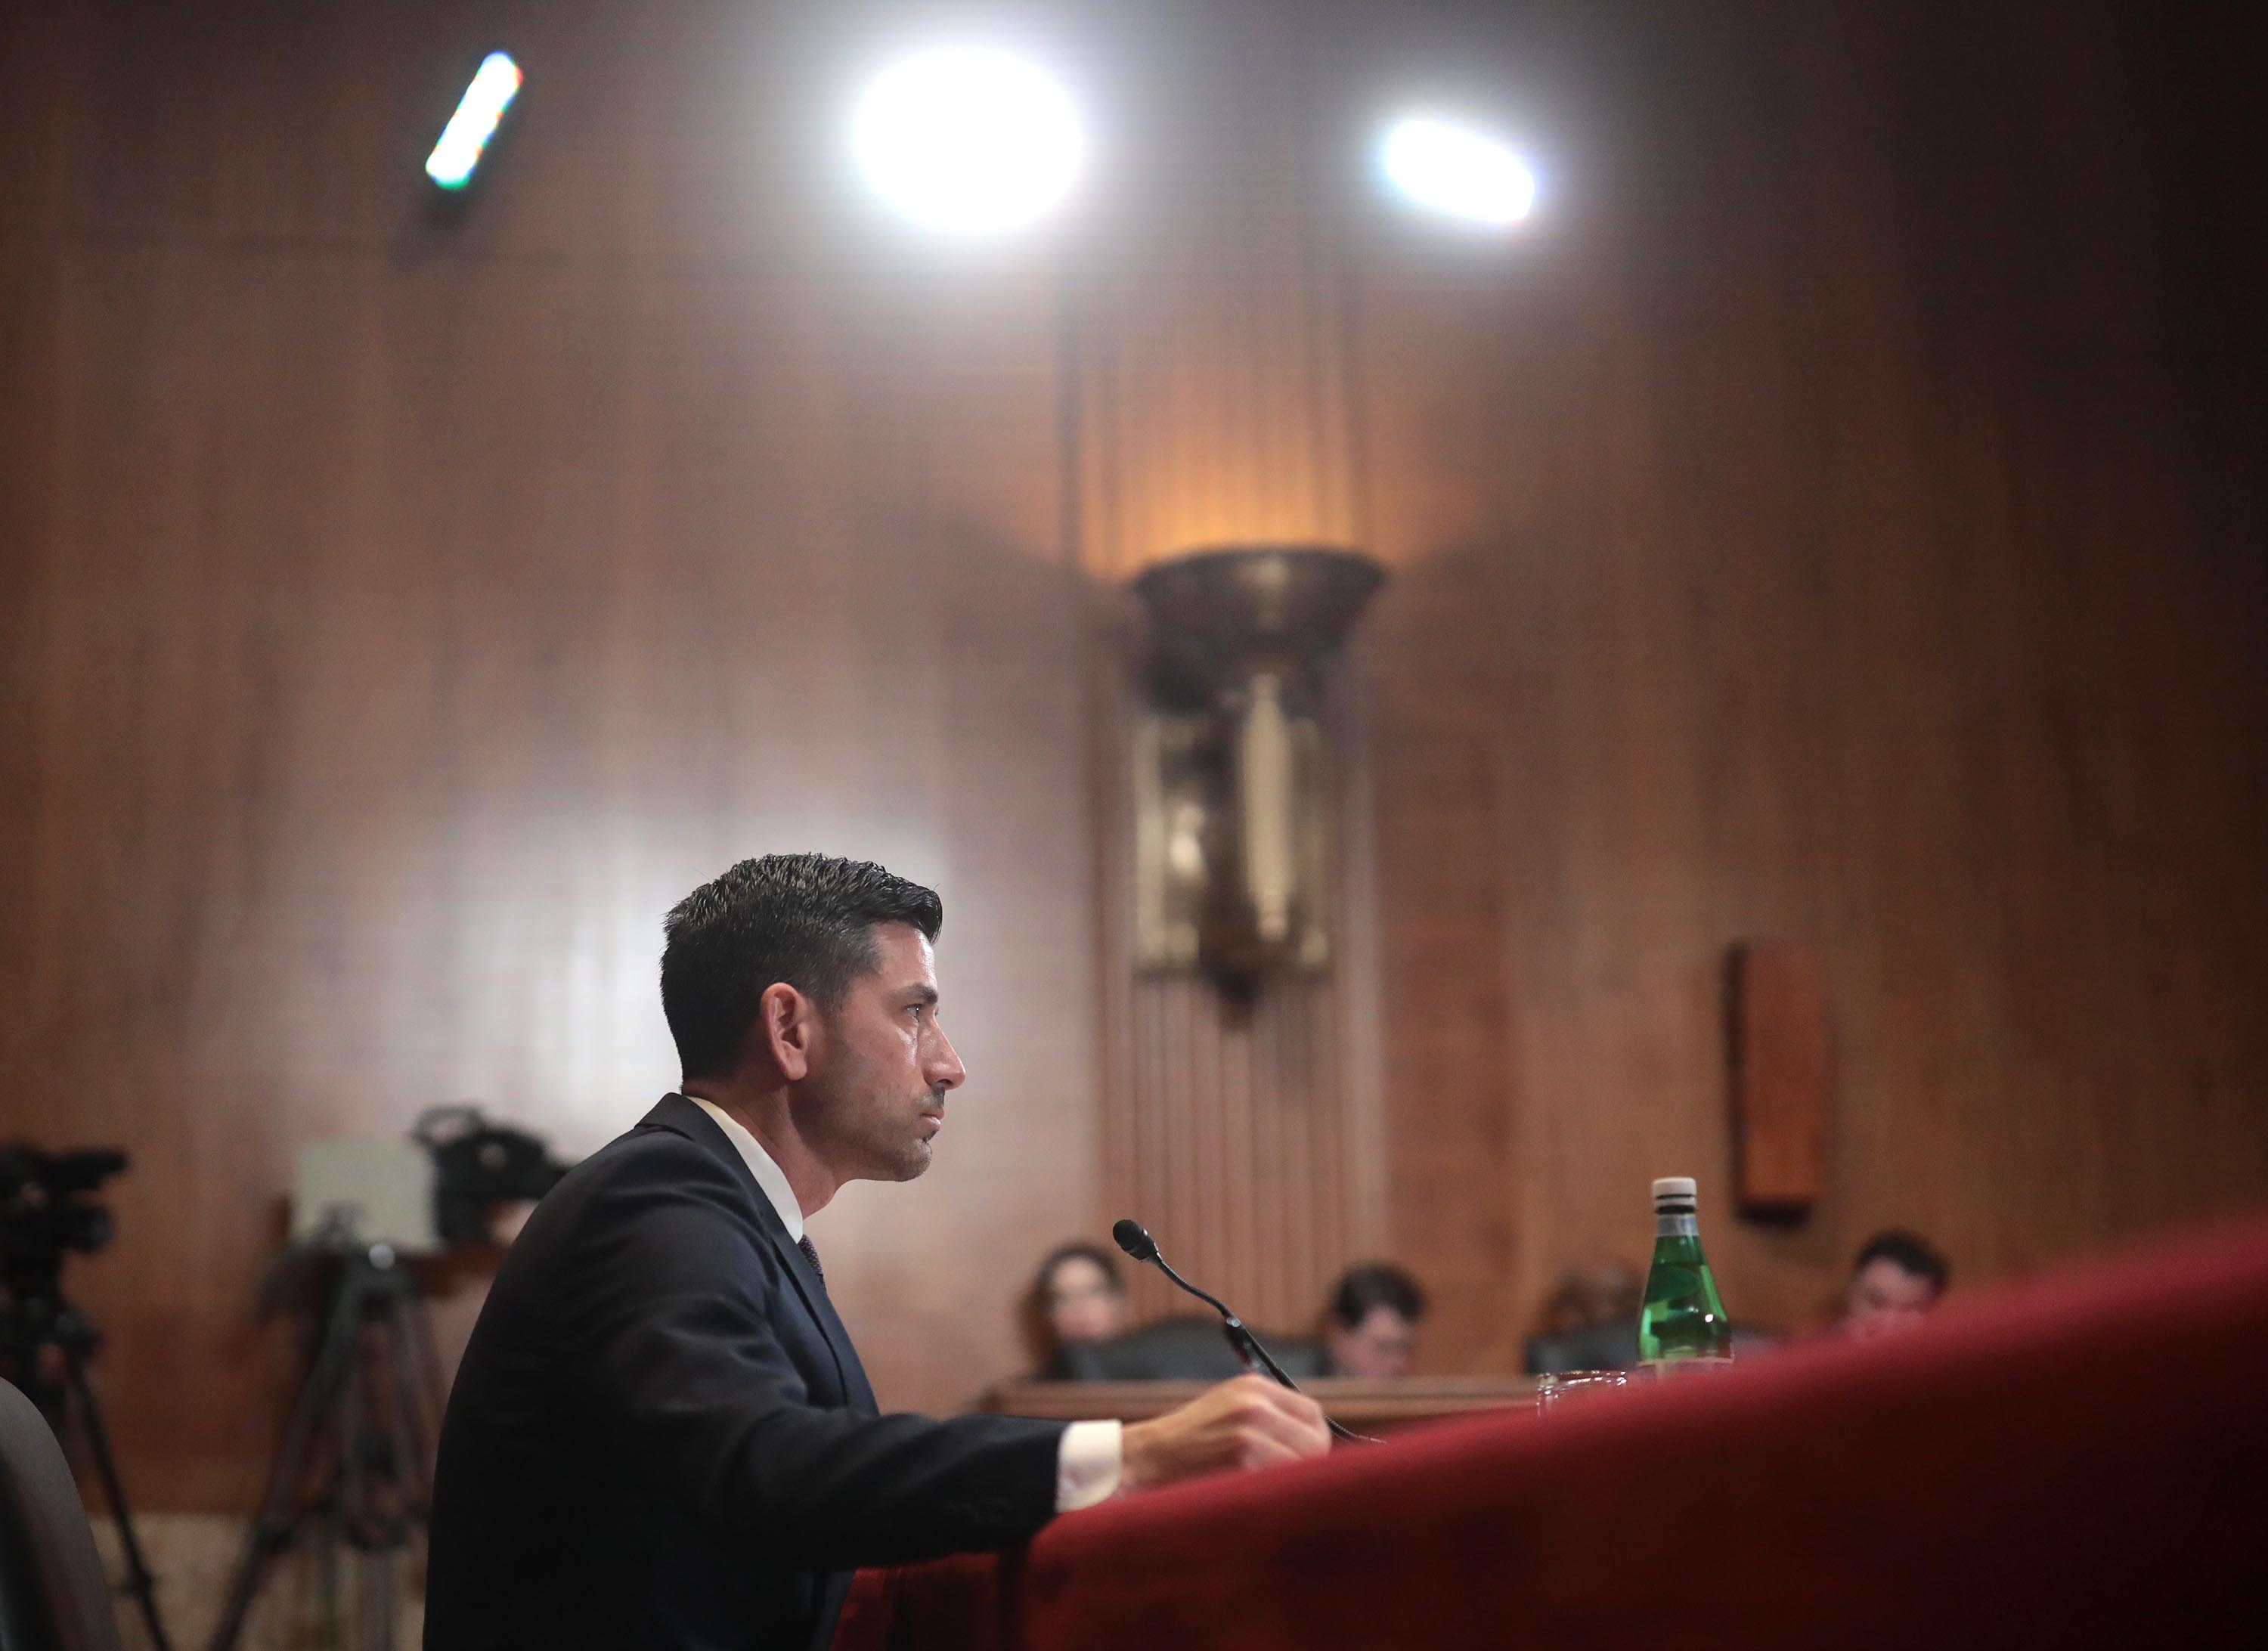 Chad Wolf faces Senate nomination hearing amid questions over intel assessments